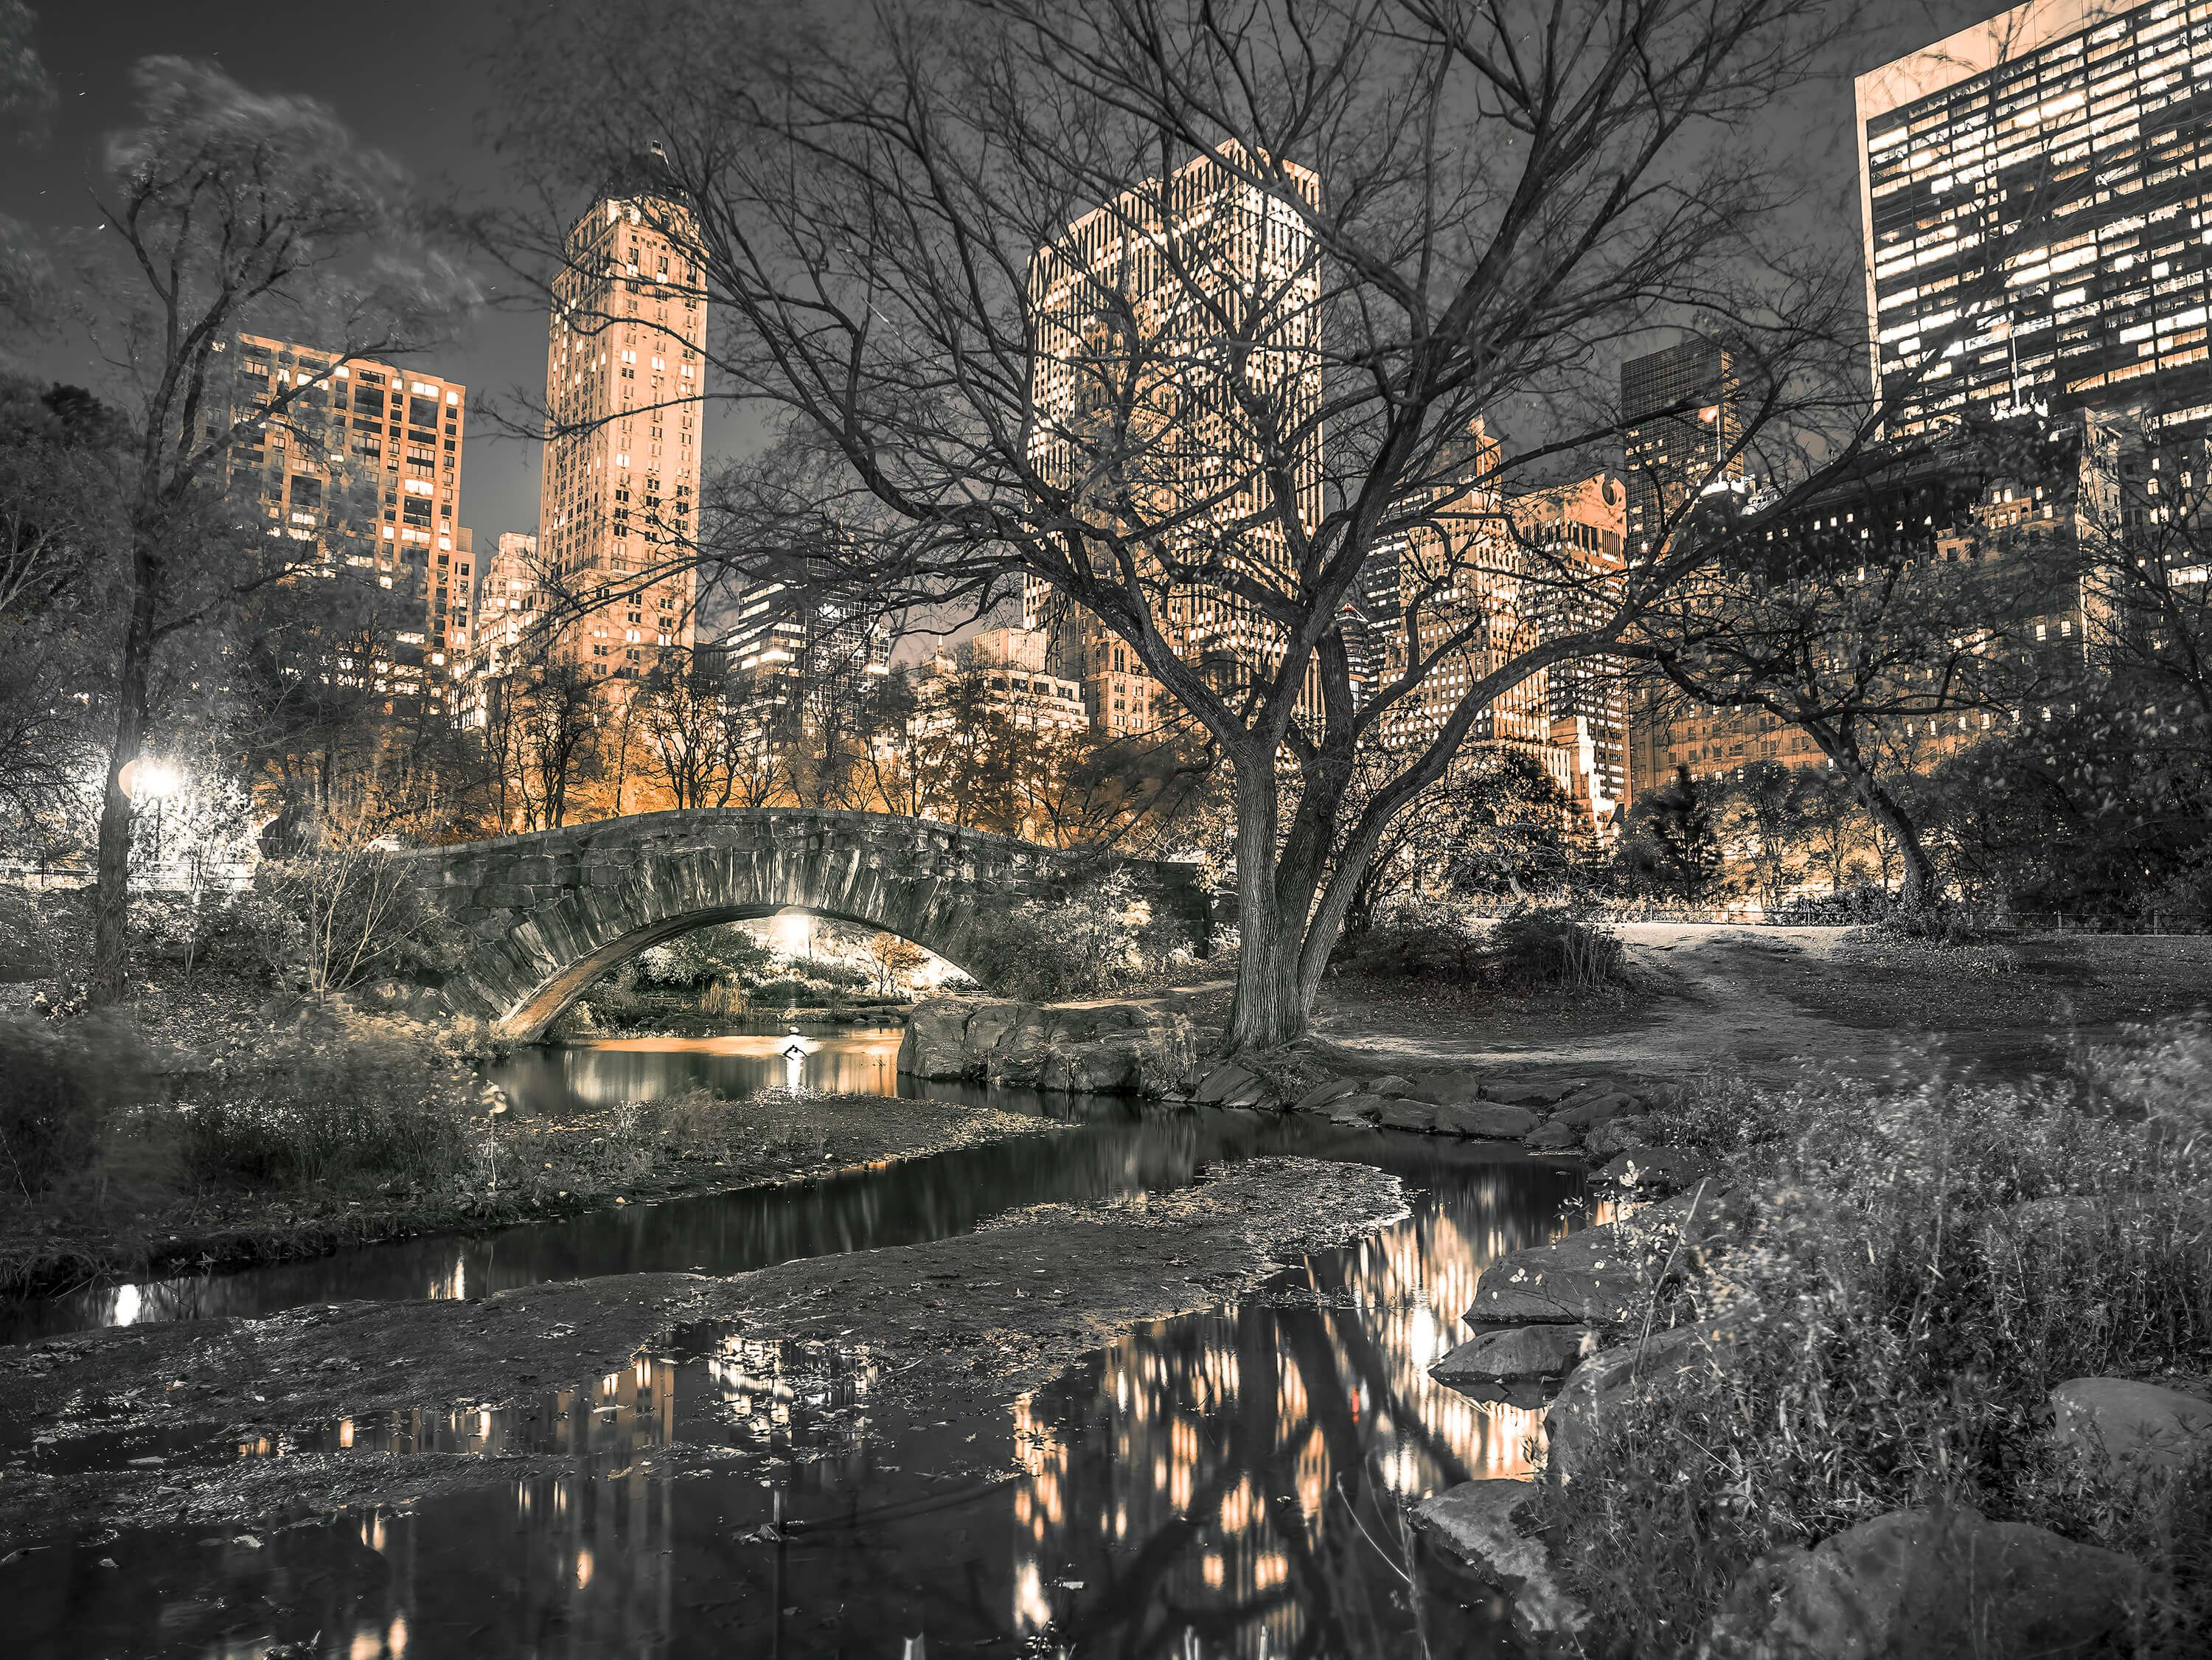 Central park in the evening